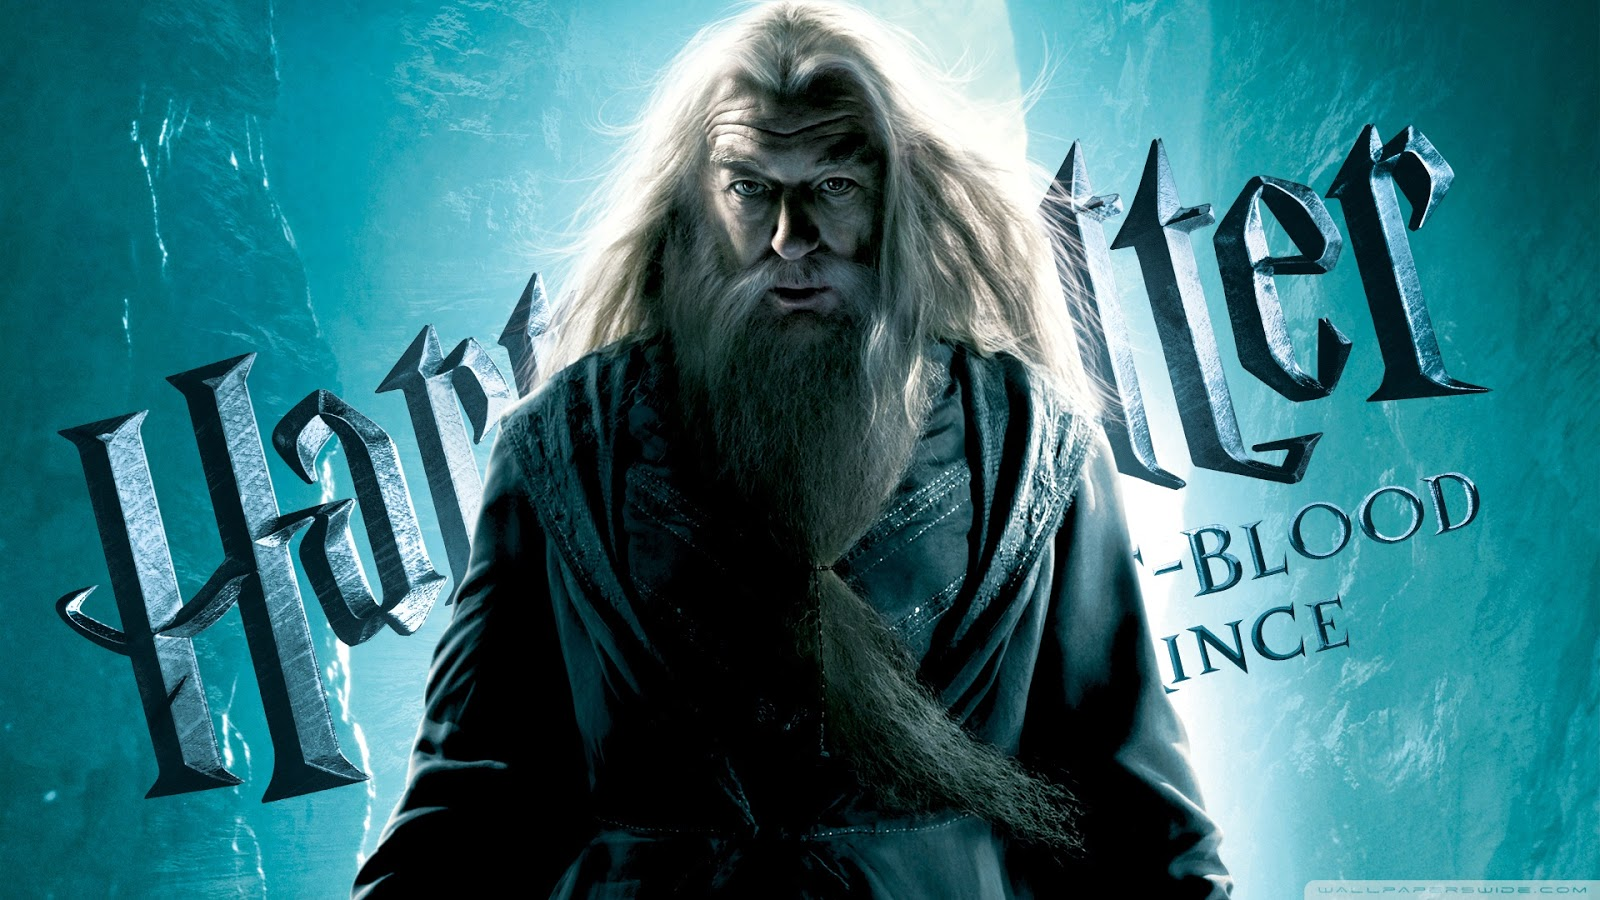 Harry Potter Half Blood Prince HD Poster